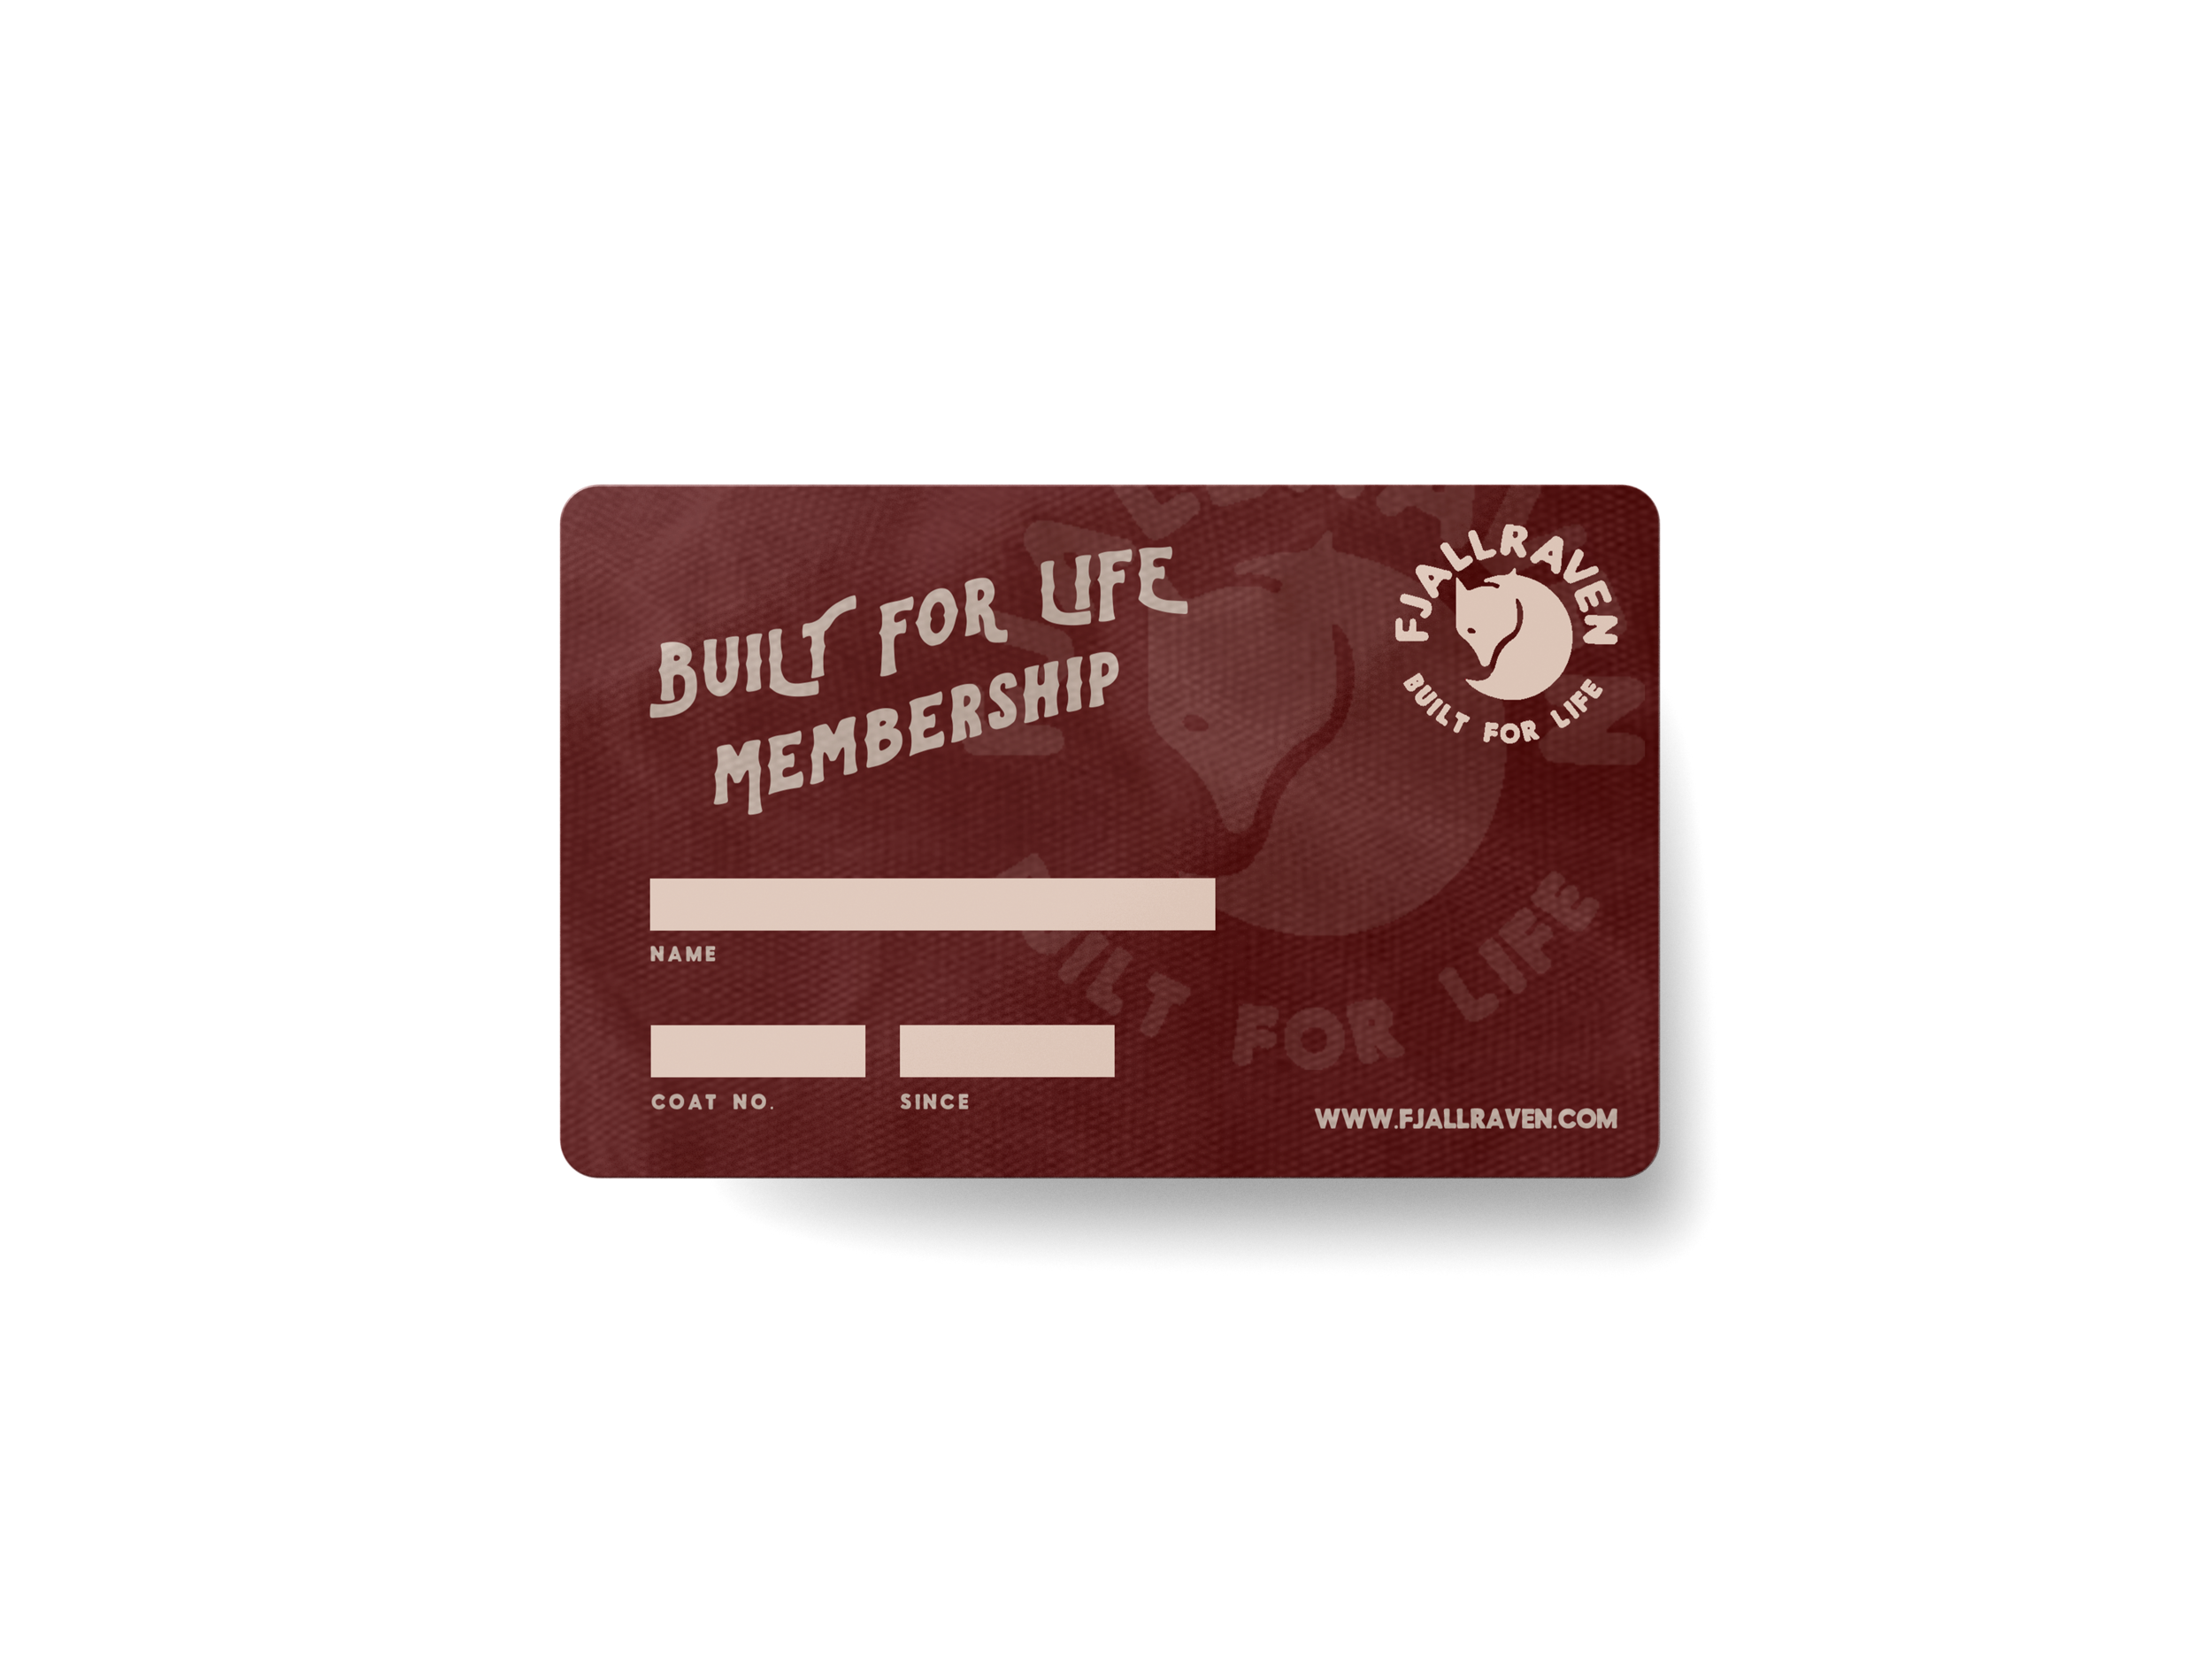 When you purchase a coat, you'll receive a lifetime membership card.